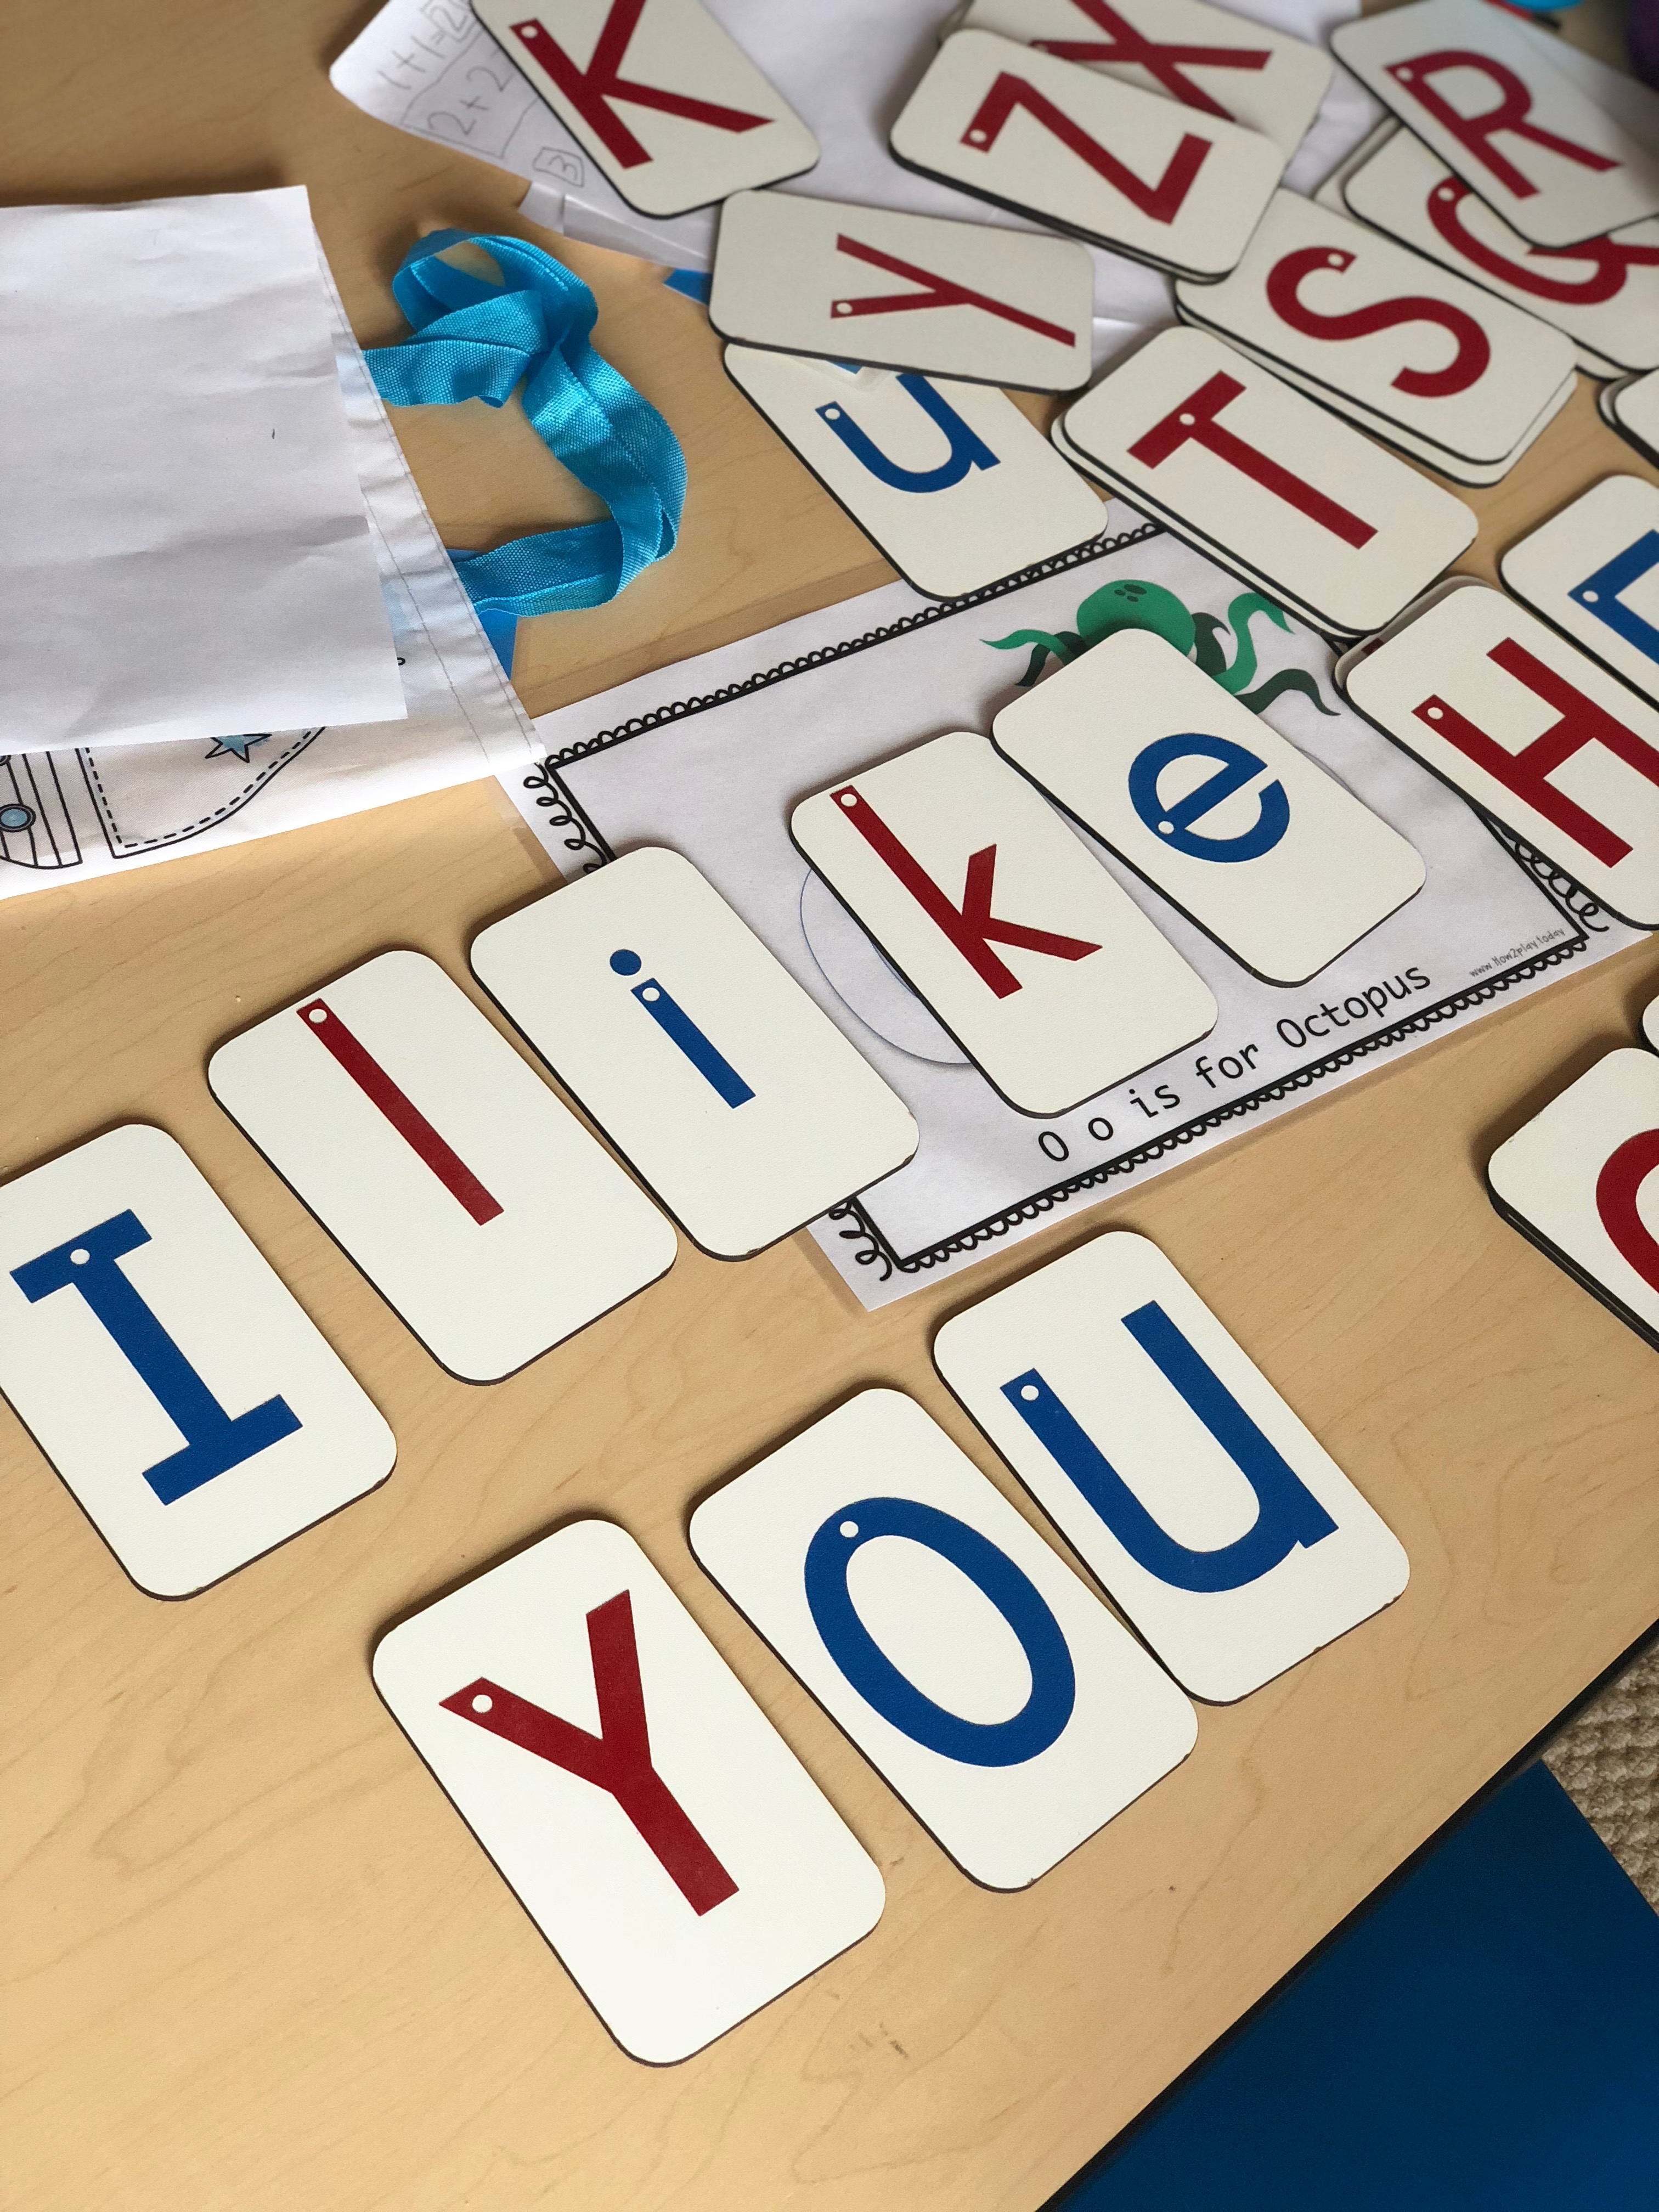 These Montessori sandpaper letters are amazing! They're made to order, high quality, and my children absolutely love playing and spelling with them. Great for letter recognition, sight words, etc.